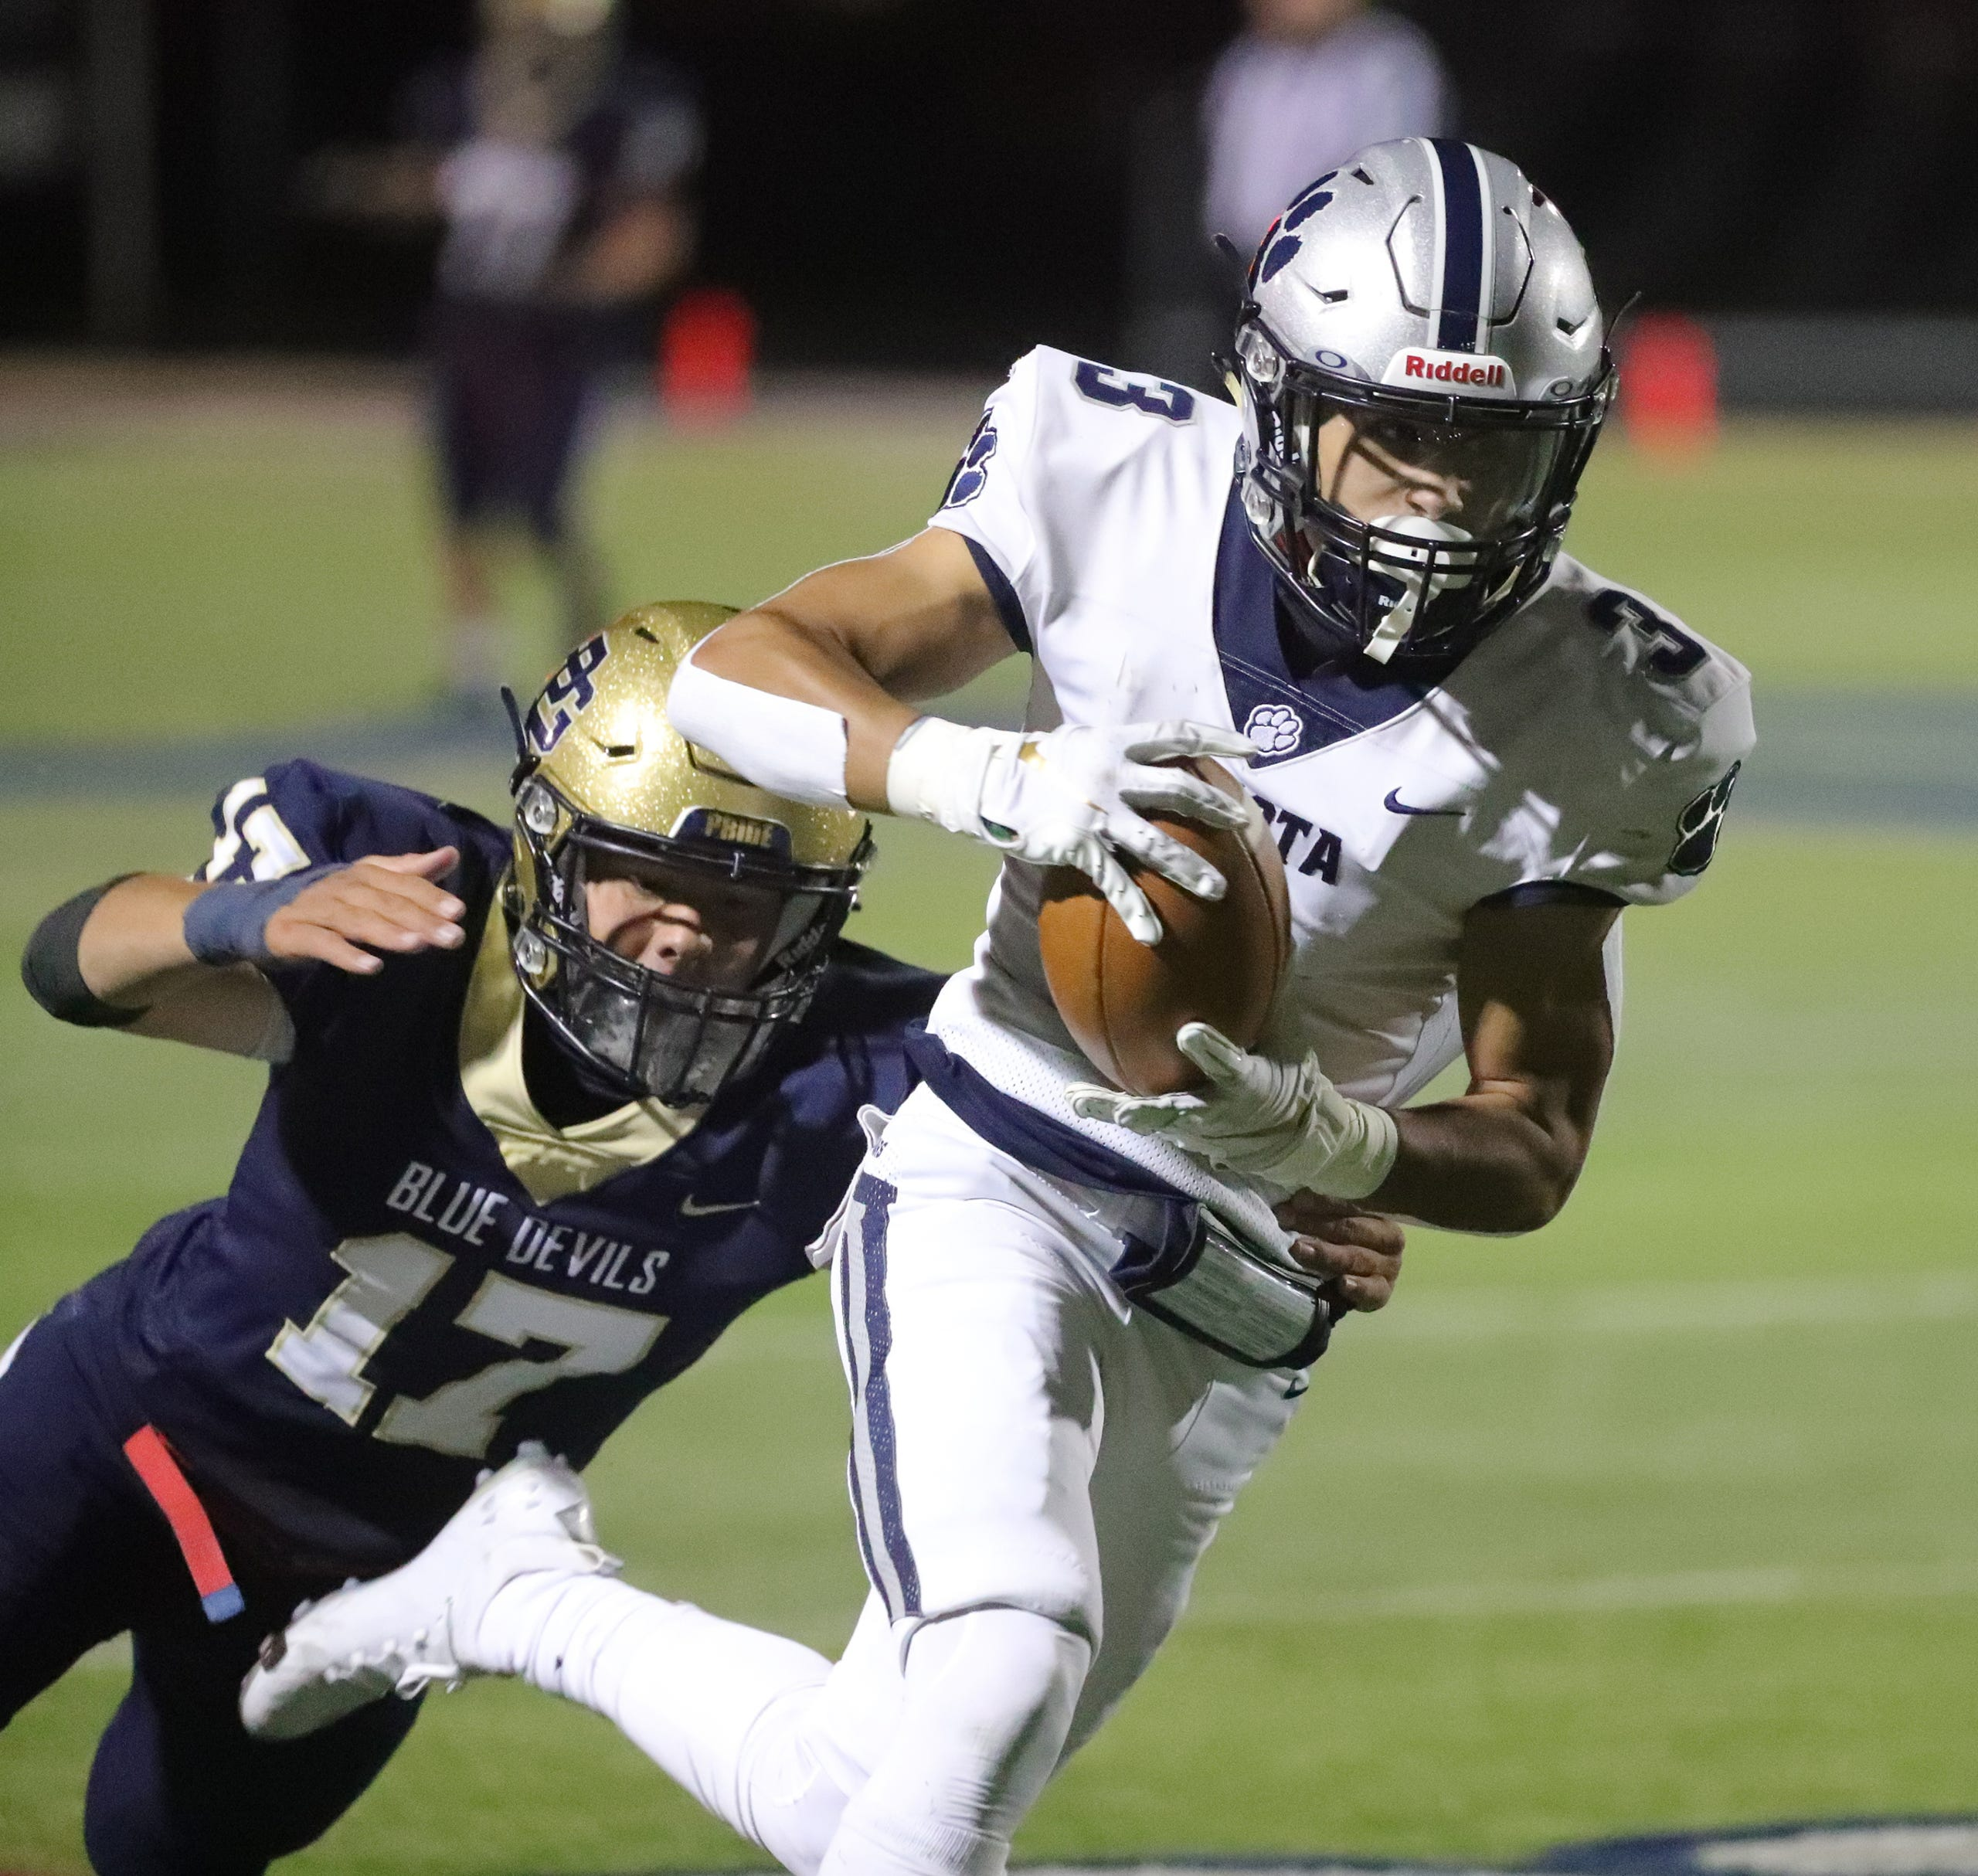 Macomb Dakota receiver Leon Preston makes a catch against Pointe South defender Max Gavagan during the second half at Grosse Pointe South high school Friday, Oct. 2, 2020.